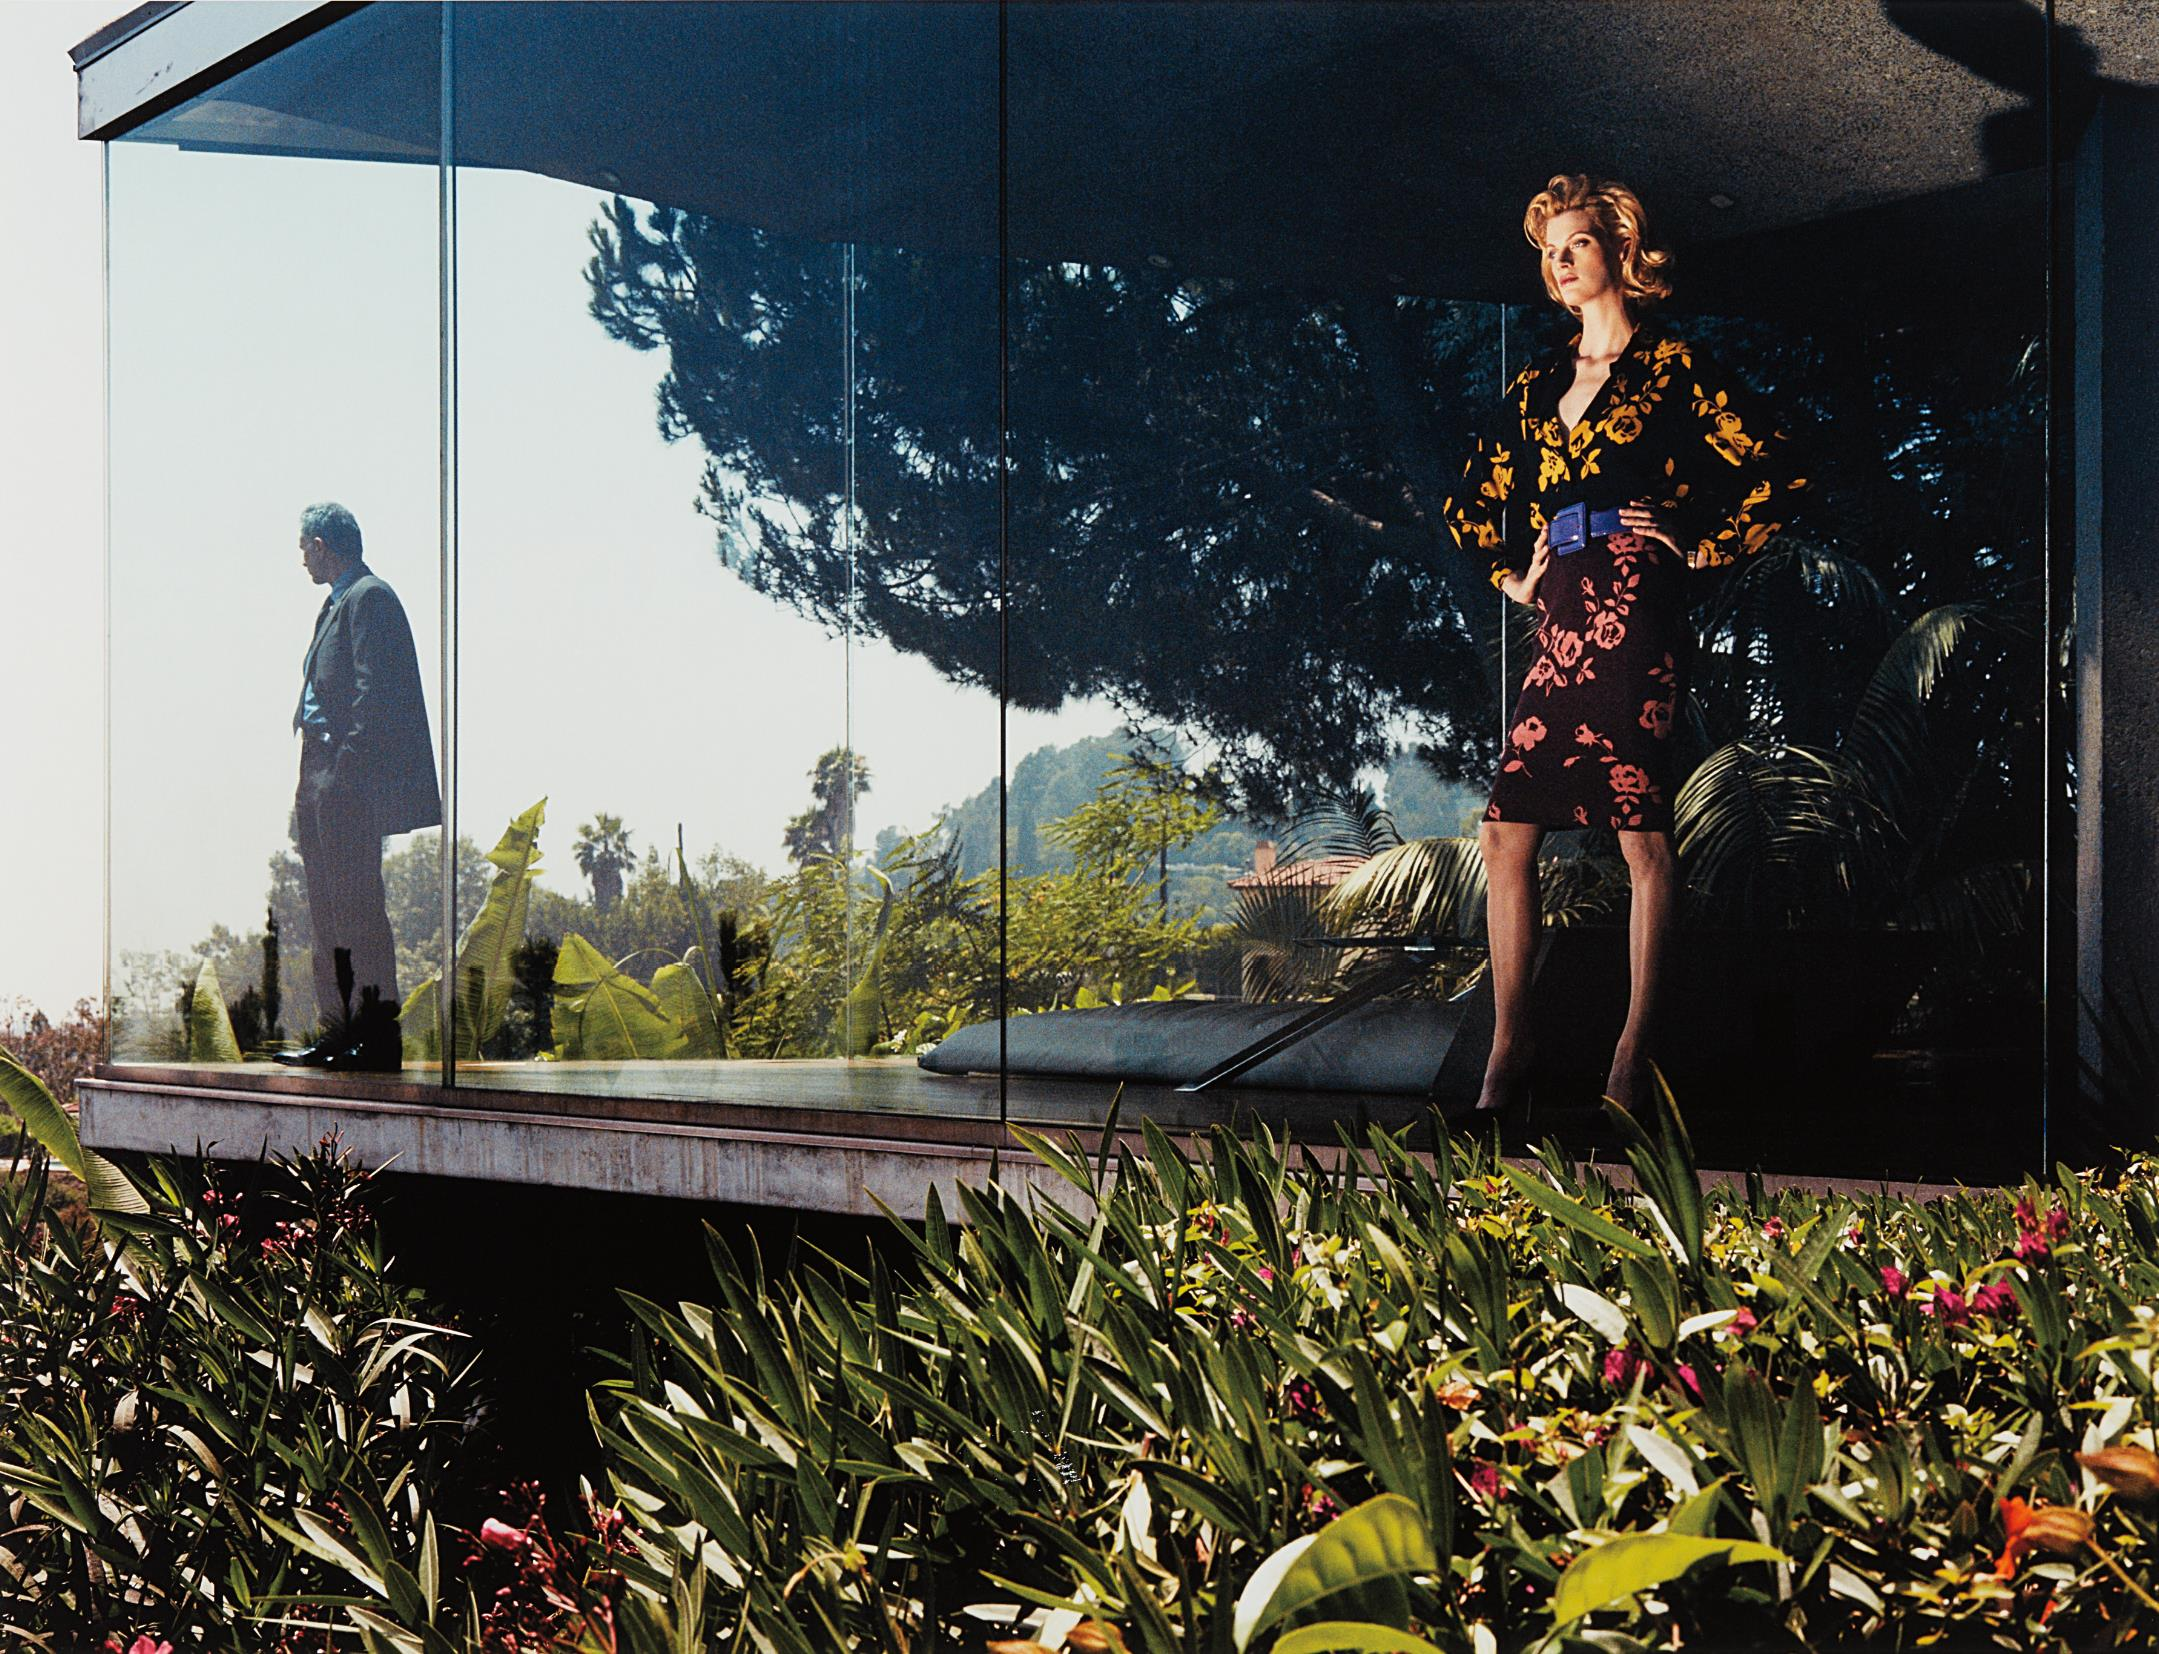 Philip-Lorca diCorcia-W, September 1997 #3-1997